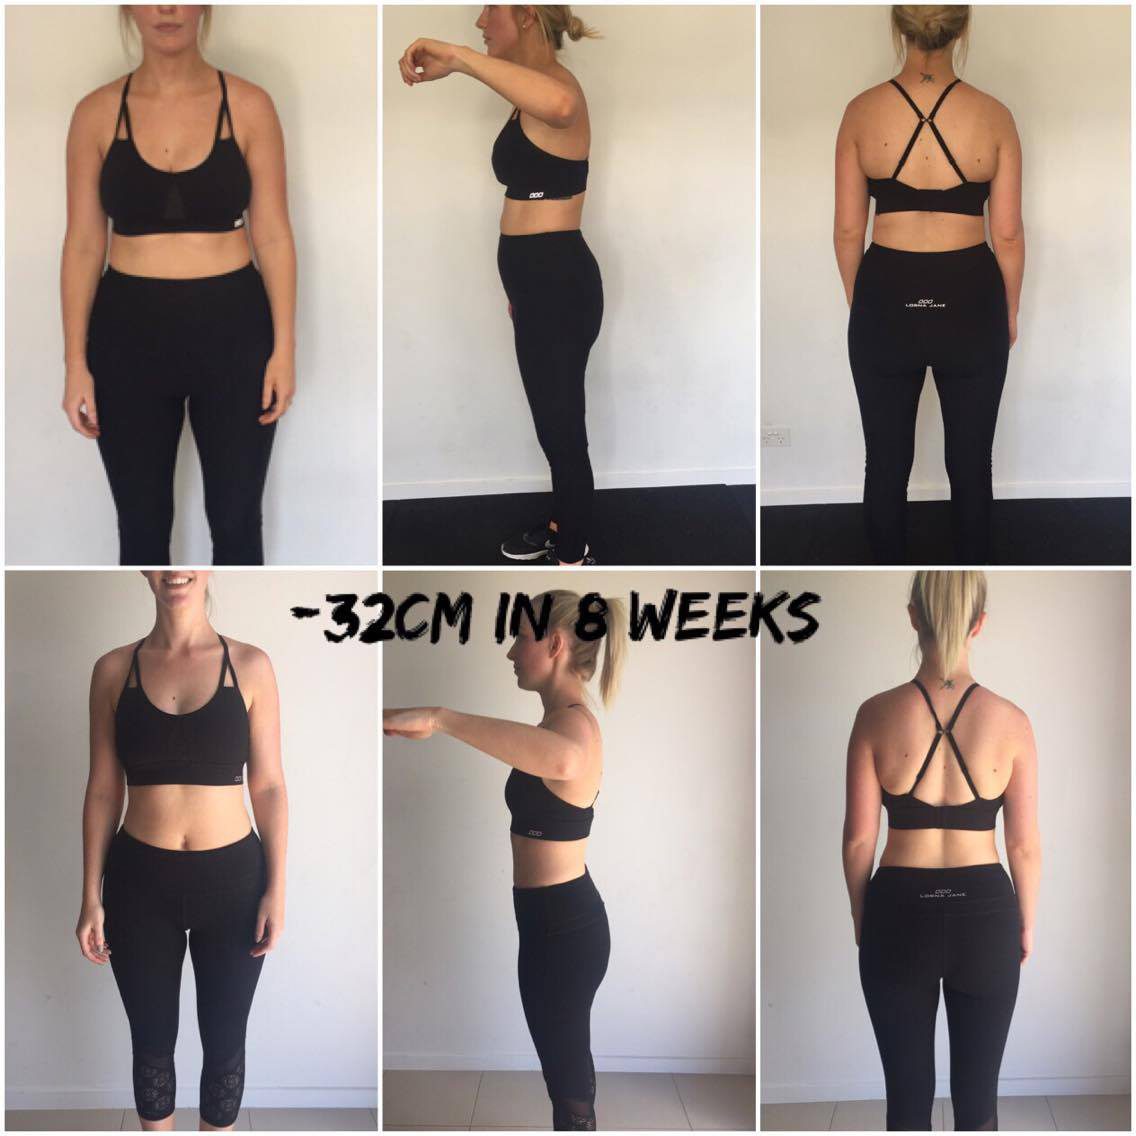 che8weeksbeforeafter